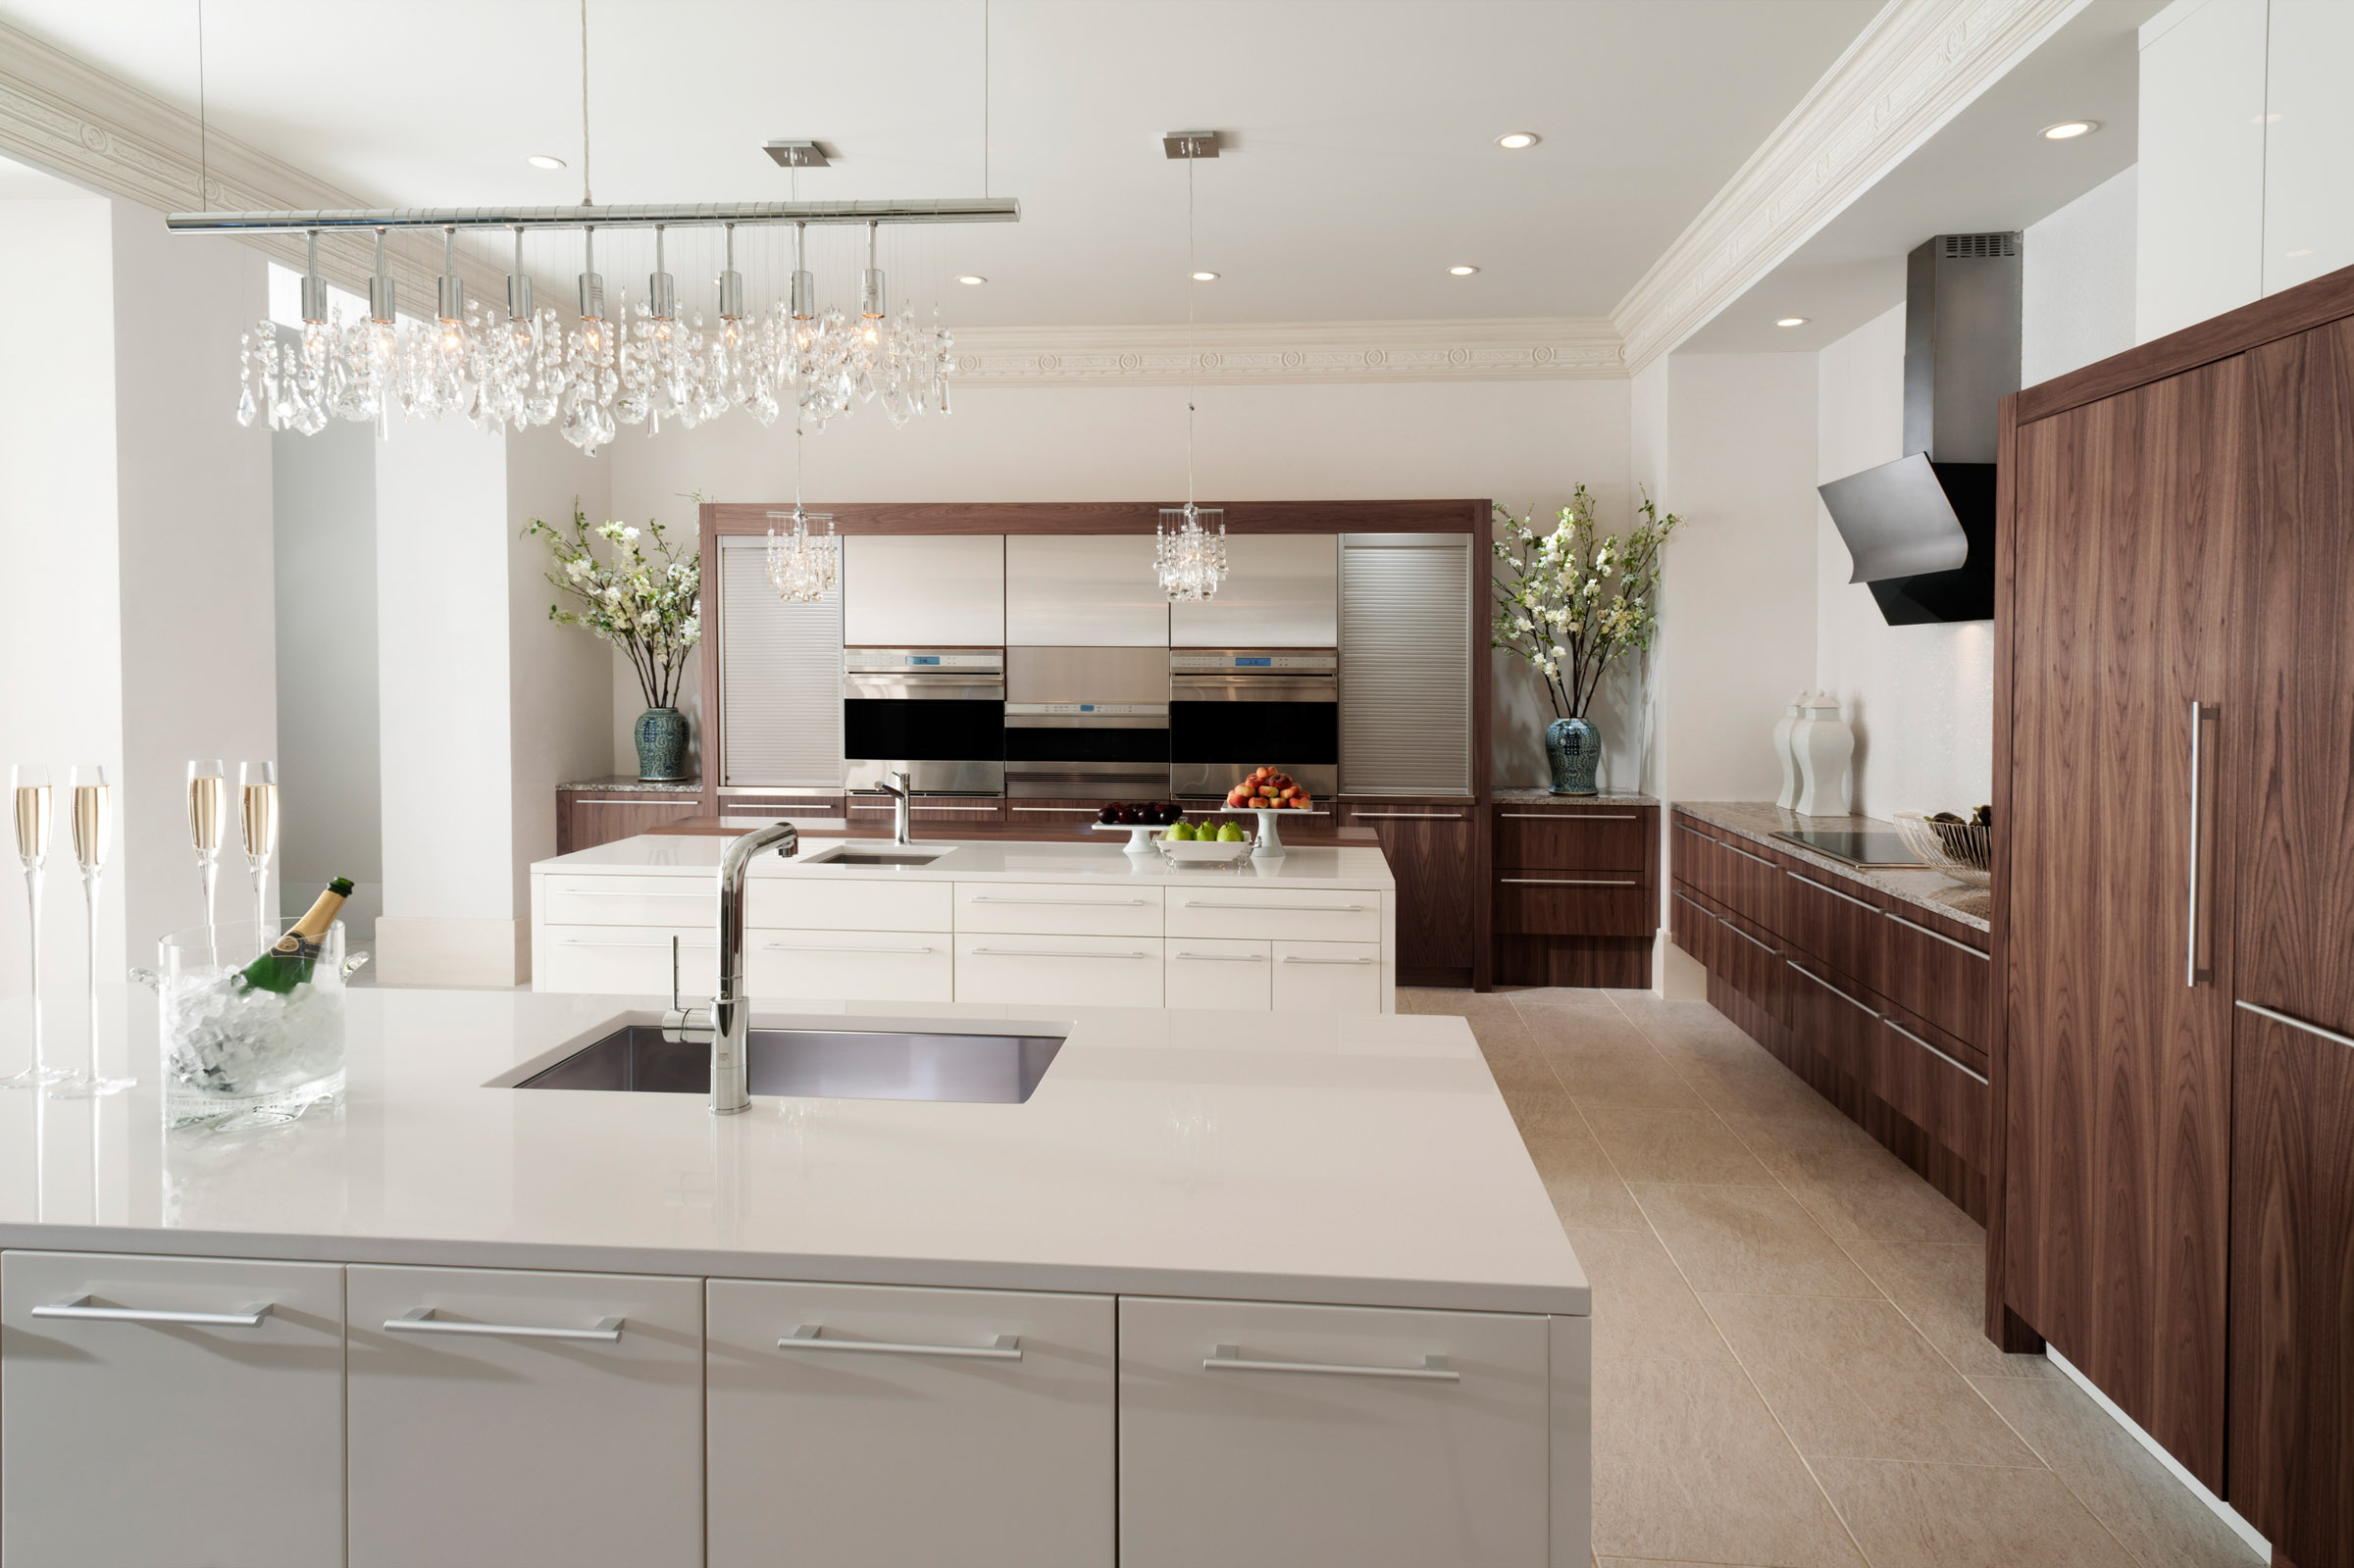 Modern & Contemporary Kitchen Designs | Cabinetry Designs